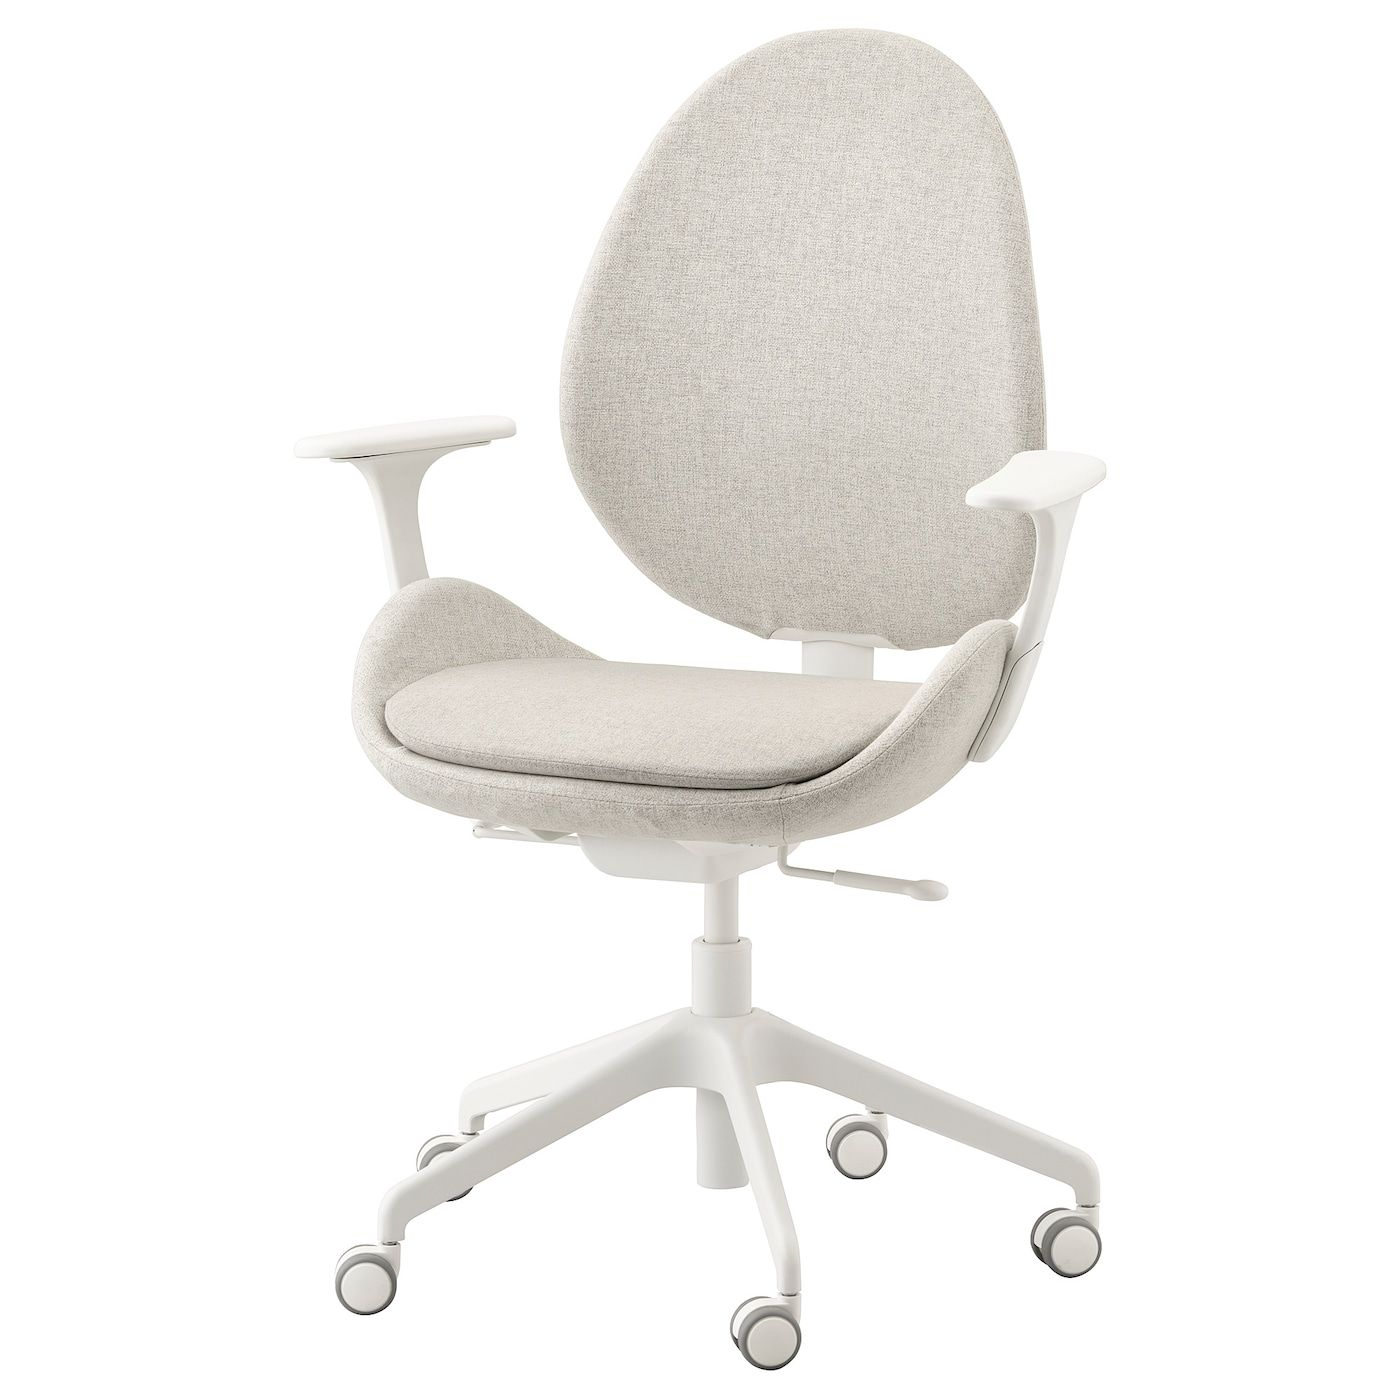 Hattefjall Drehstuhl Mit Armlehnen Gunnared Beige Weiss Ikea Deutschland In 2020 Best Office Chair Office Chair Ikea